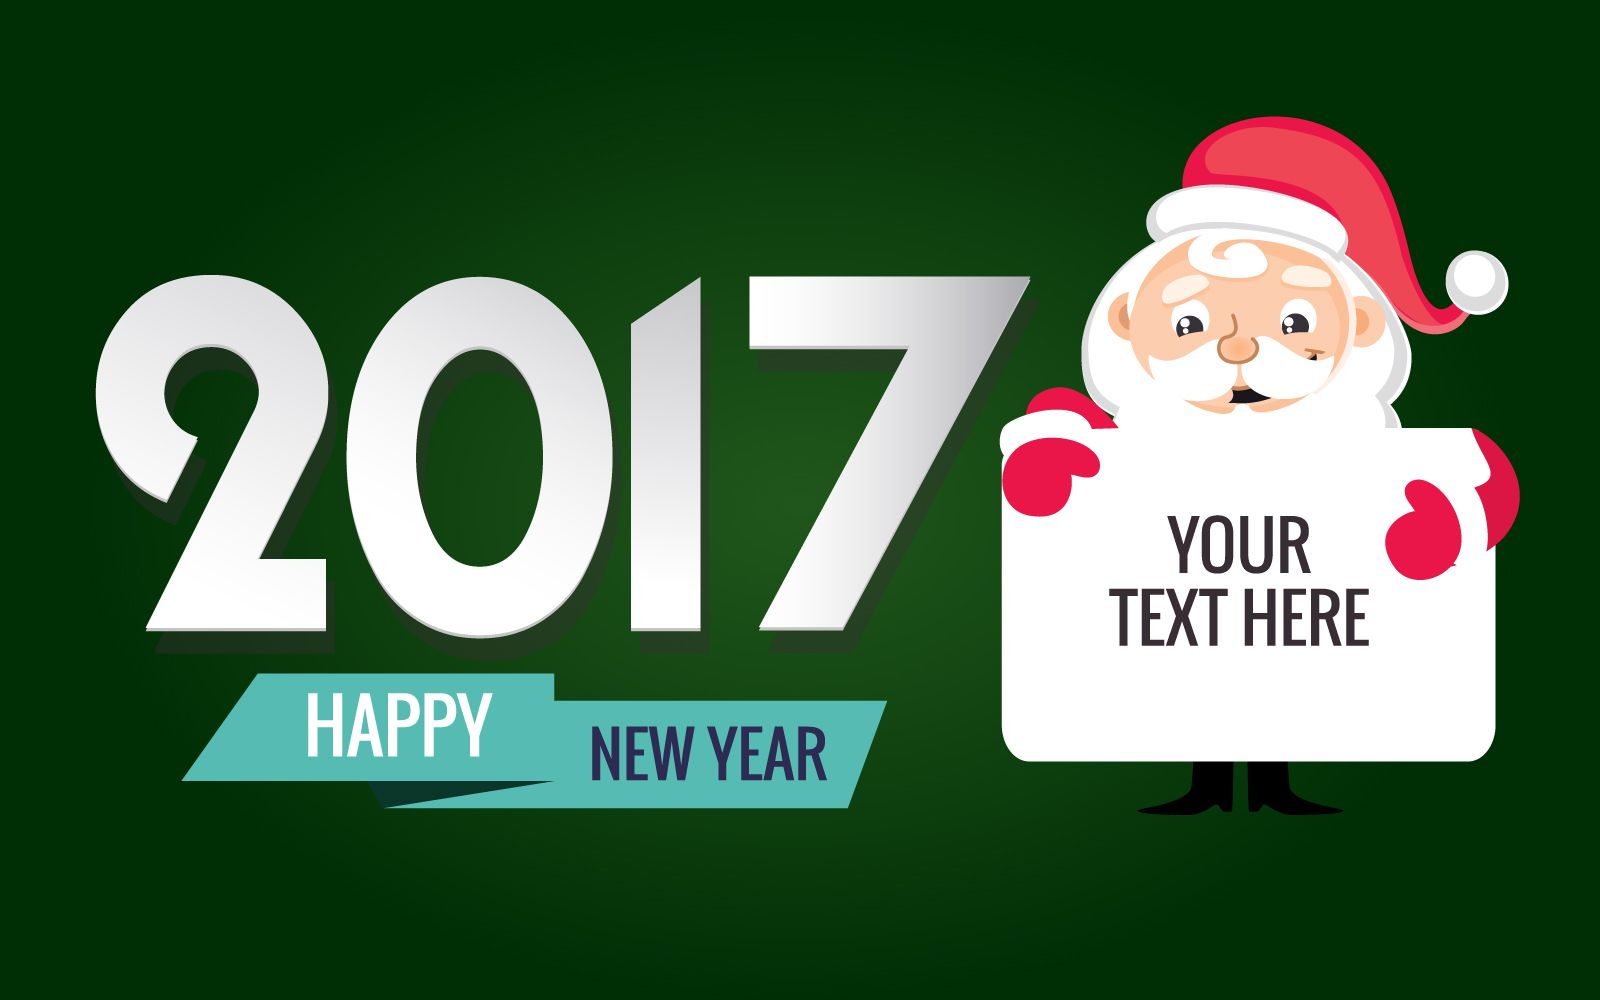 2017 new year and Xmas card editor - Editable design